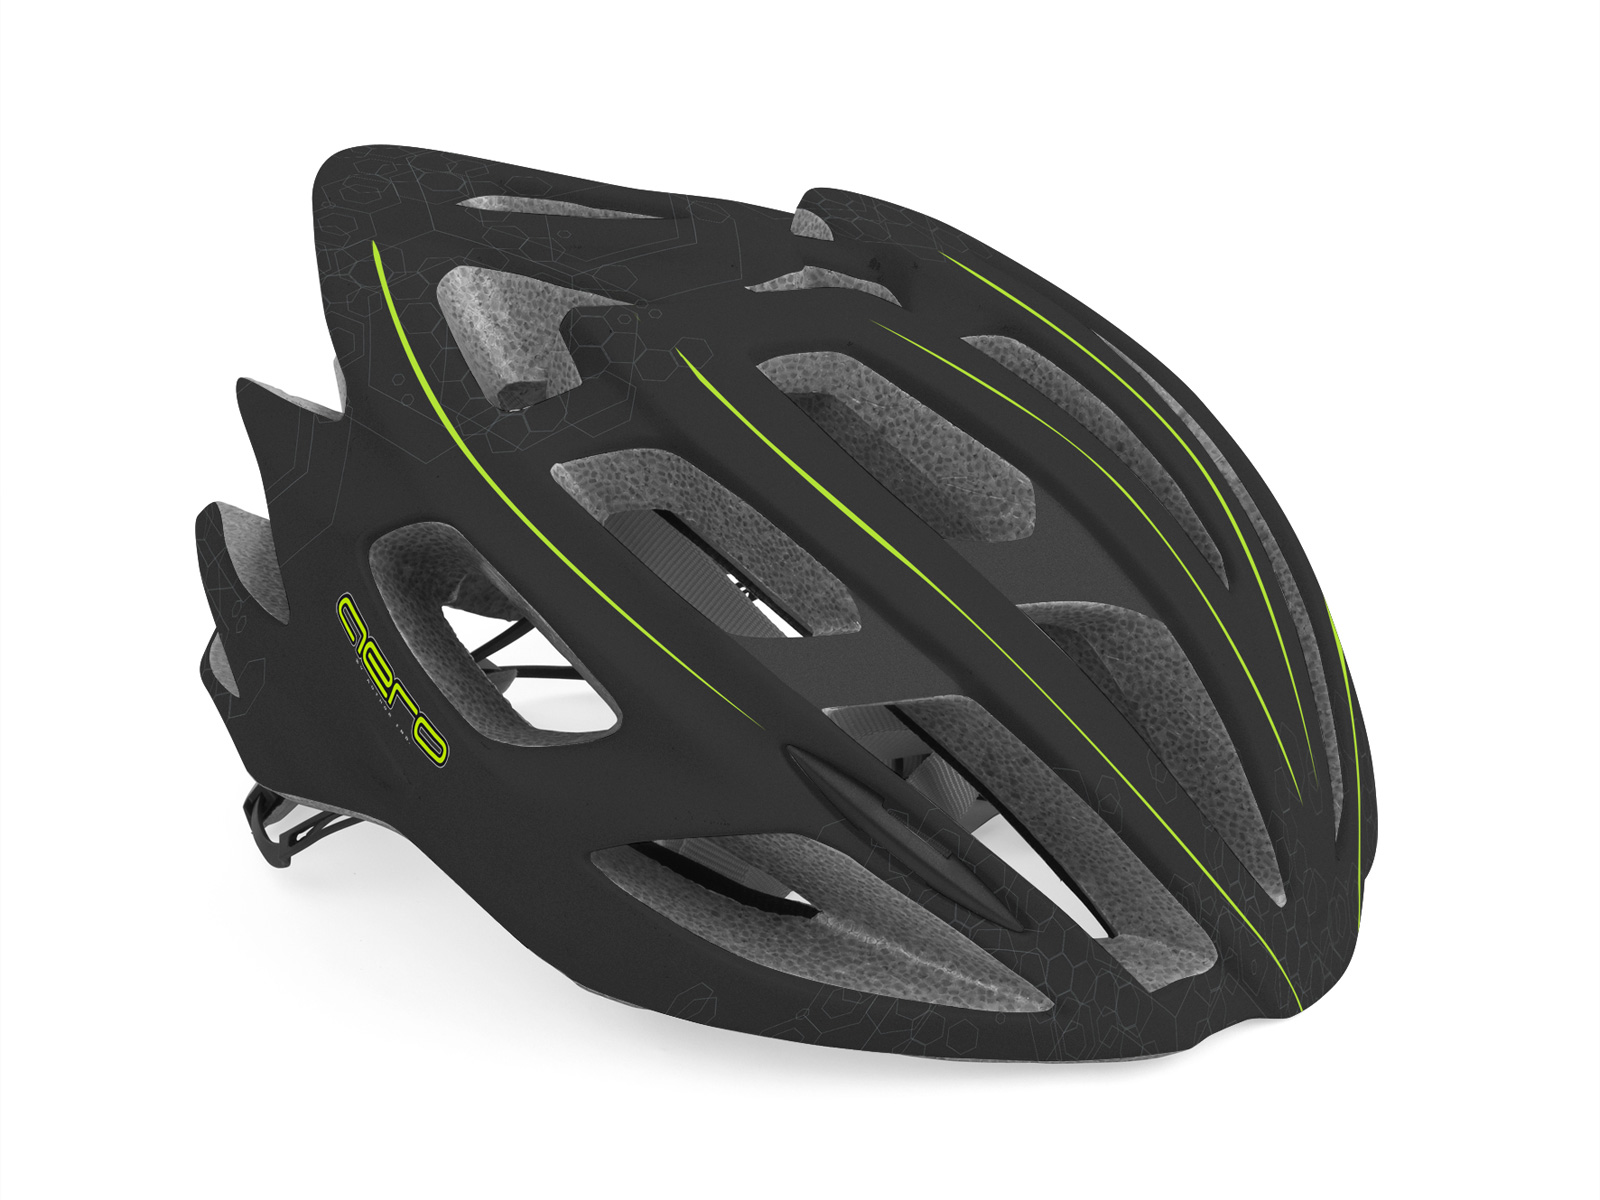 Шлем AERO InMold X7 162 BLACK/YELLOW-NEON р-р 58-62см AUTHOR